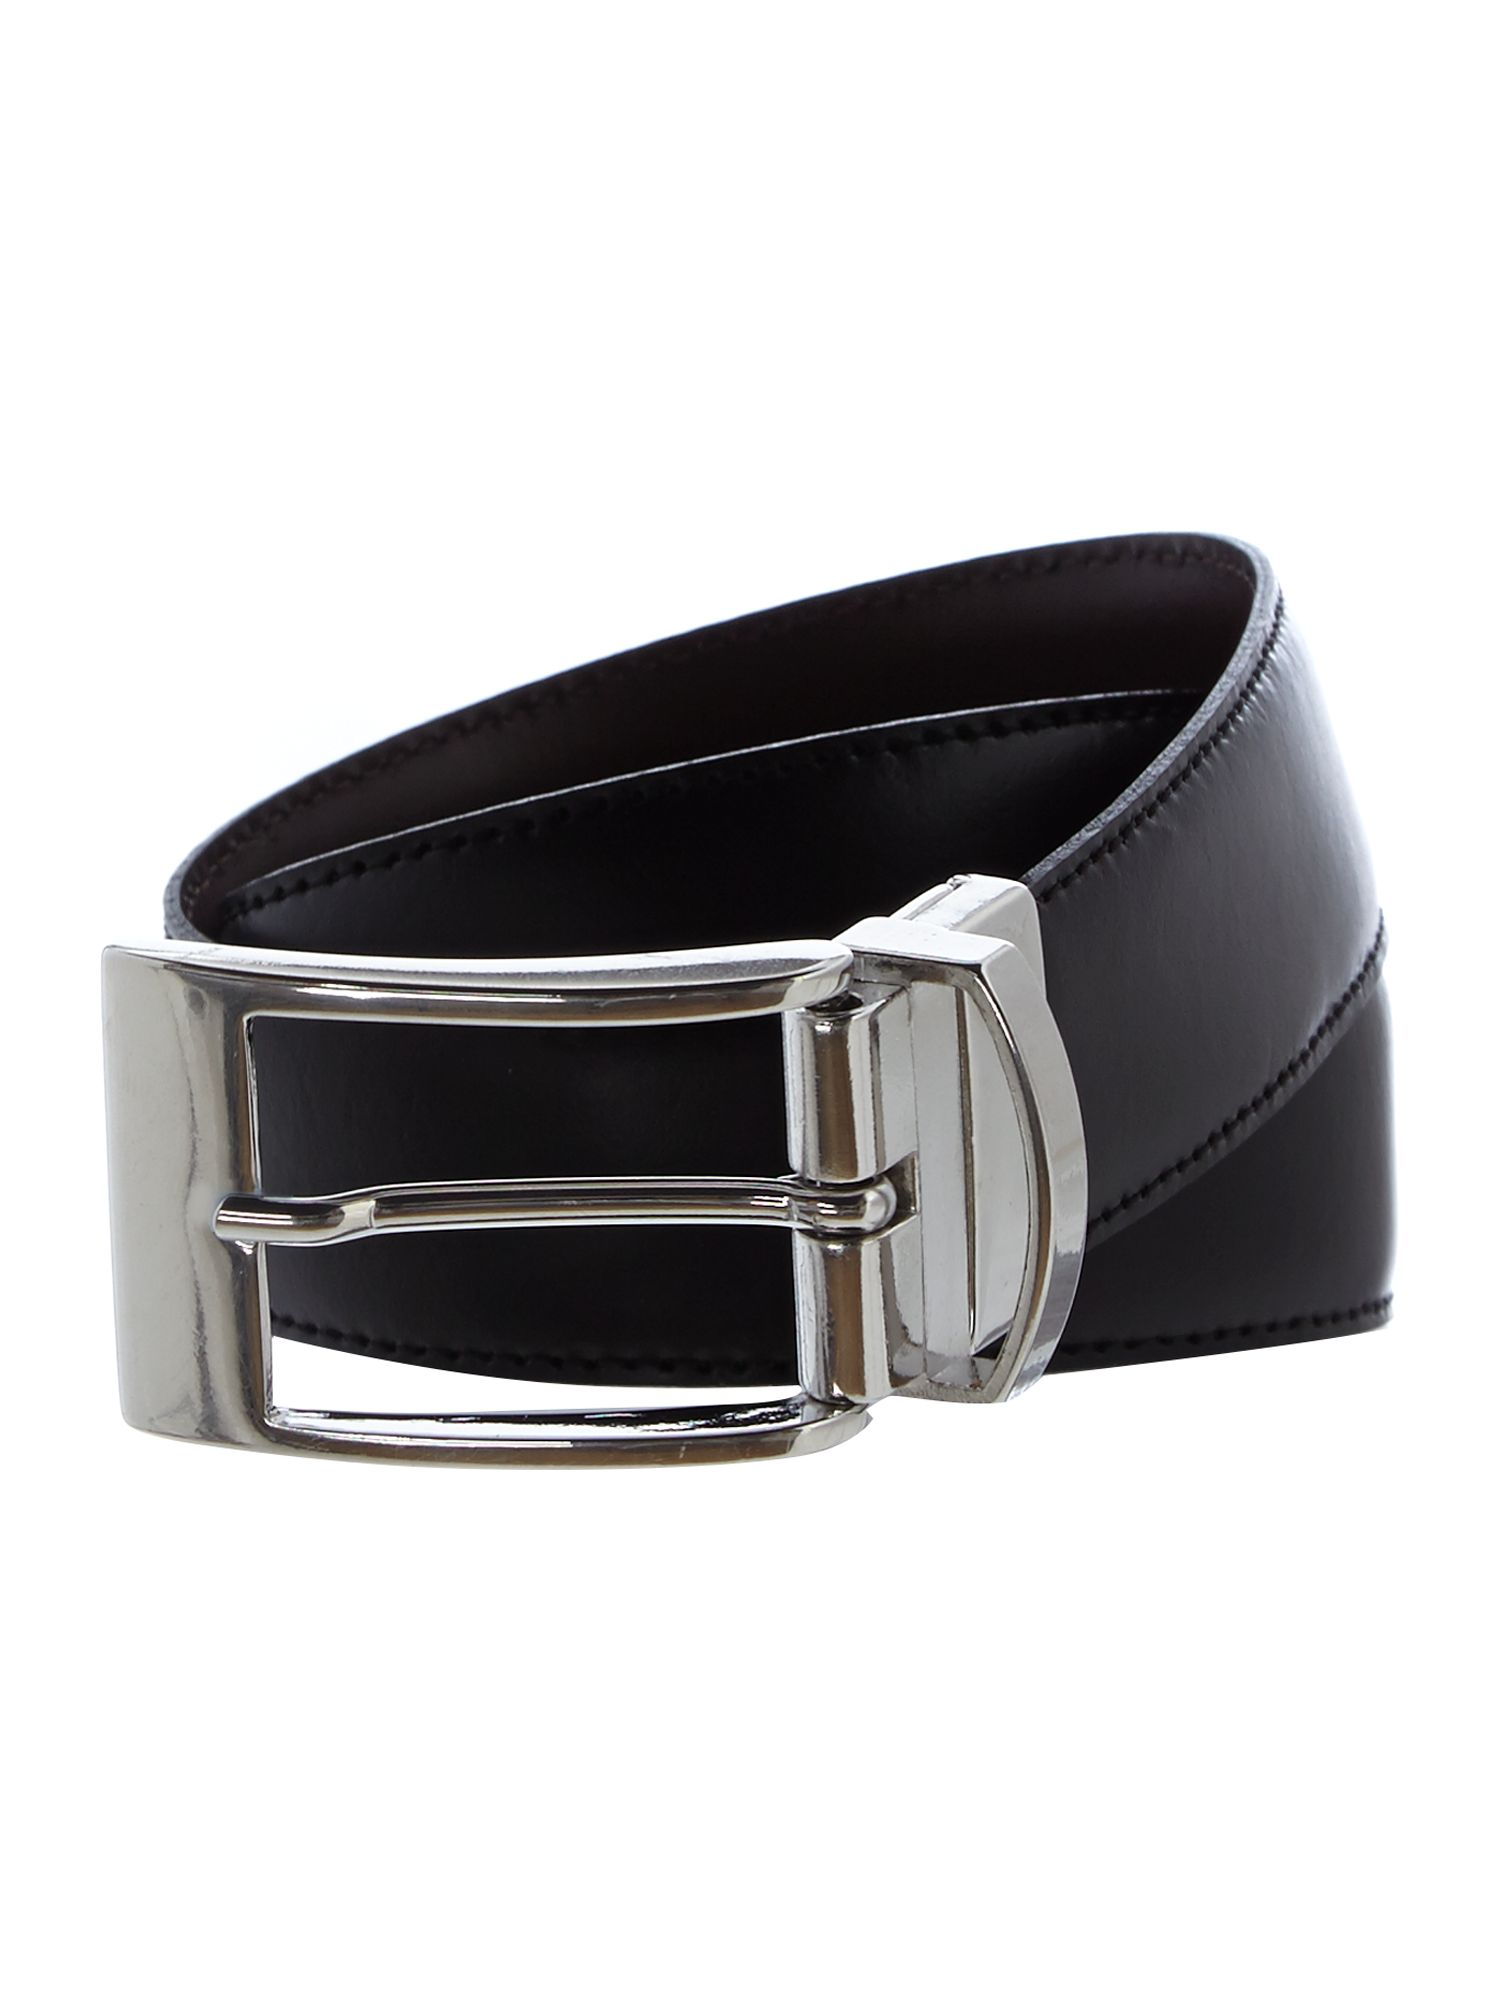 Reversible stitch edge belt